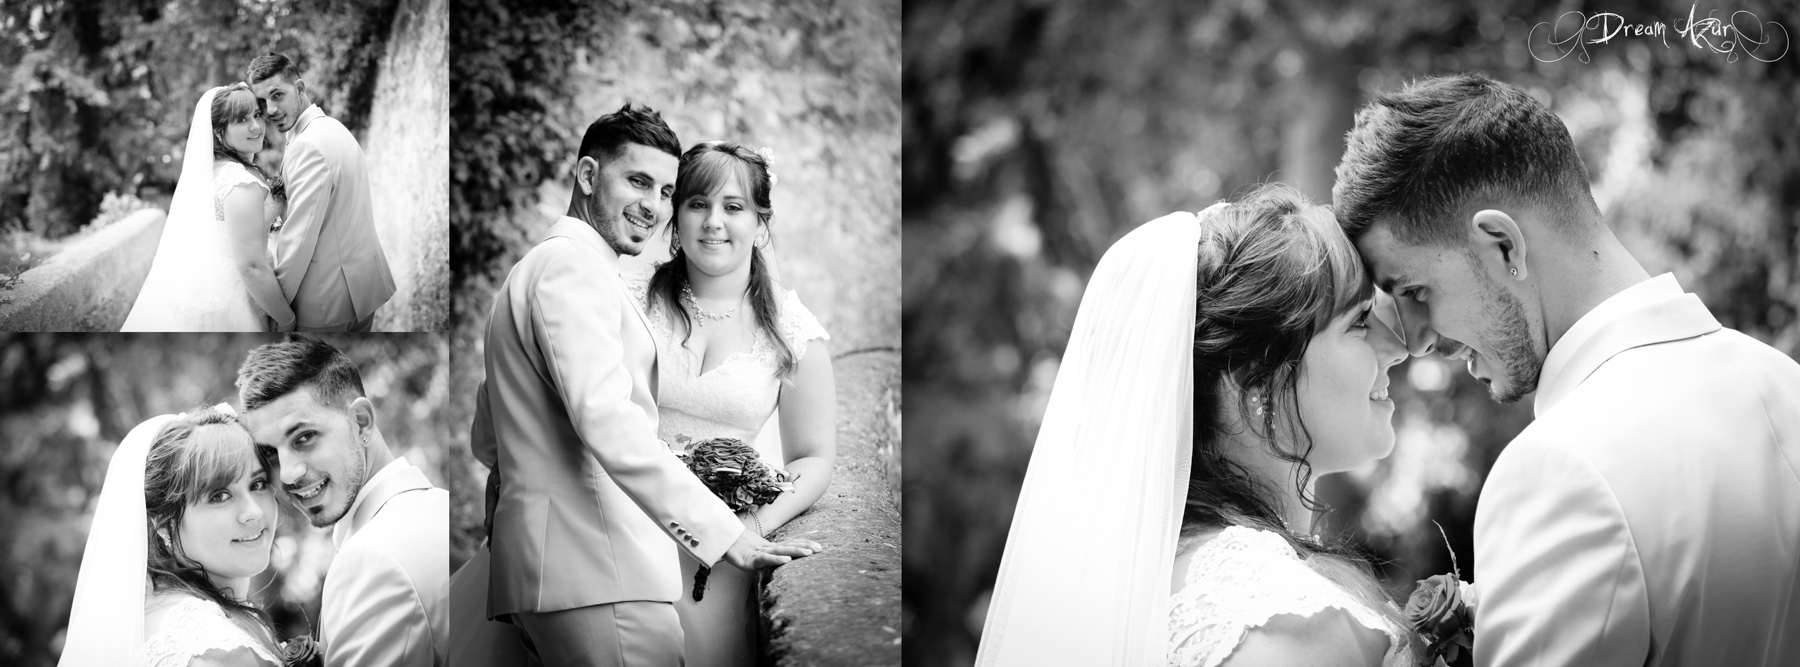 190824COMPO-Mariage-Cindy-et-Anthony-64